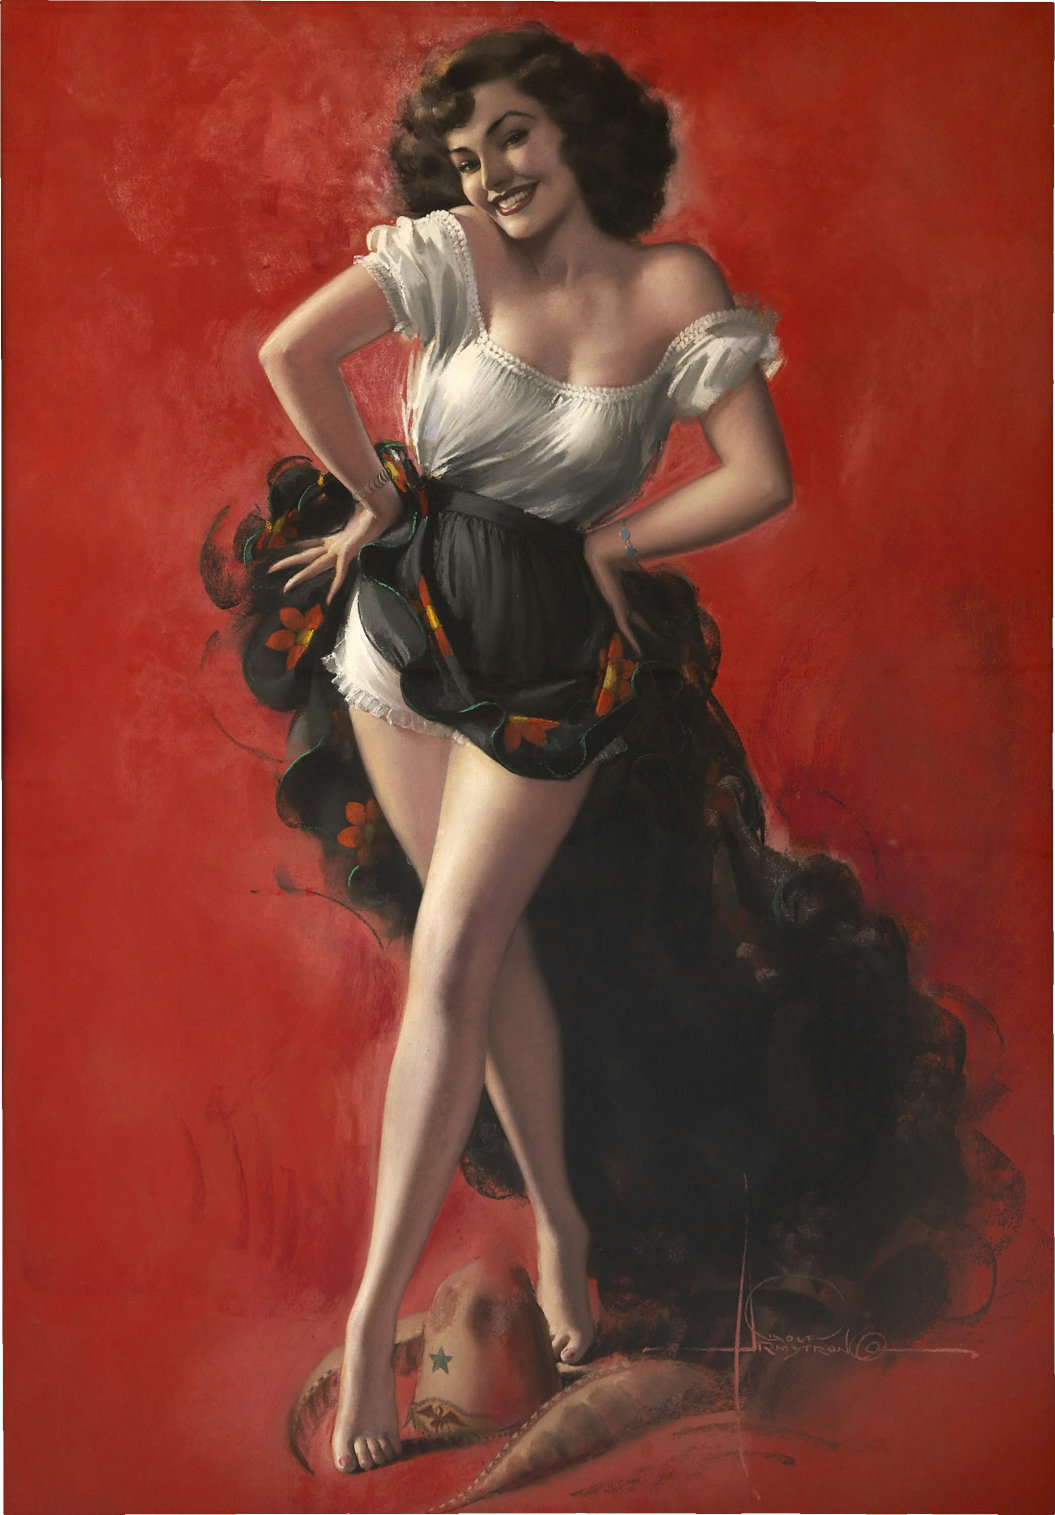 rolf armstrong illustration